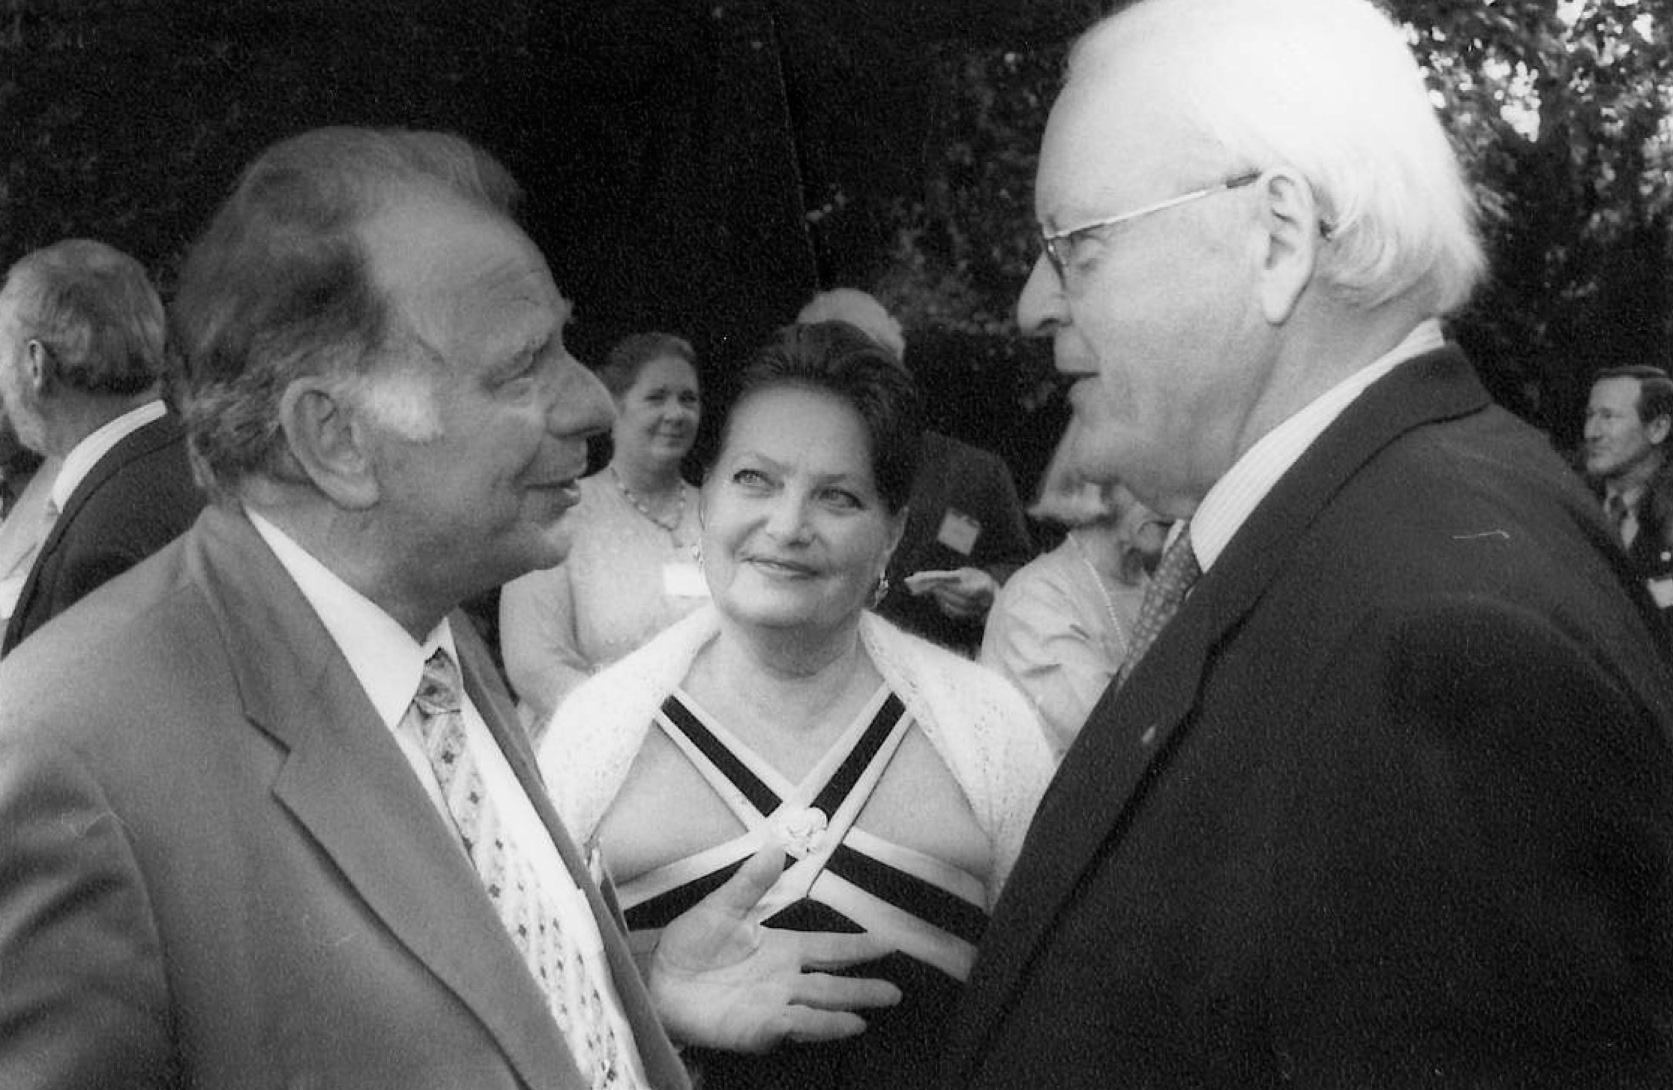 Roman Herzog (right) with Nobel Laureate Zhores Alferov in Lindau in 2001. Photo: Zhores Alferov